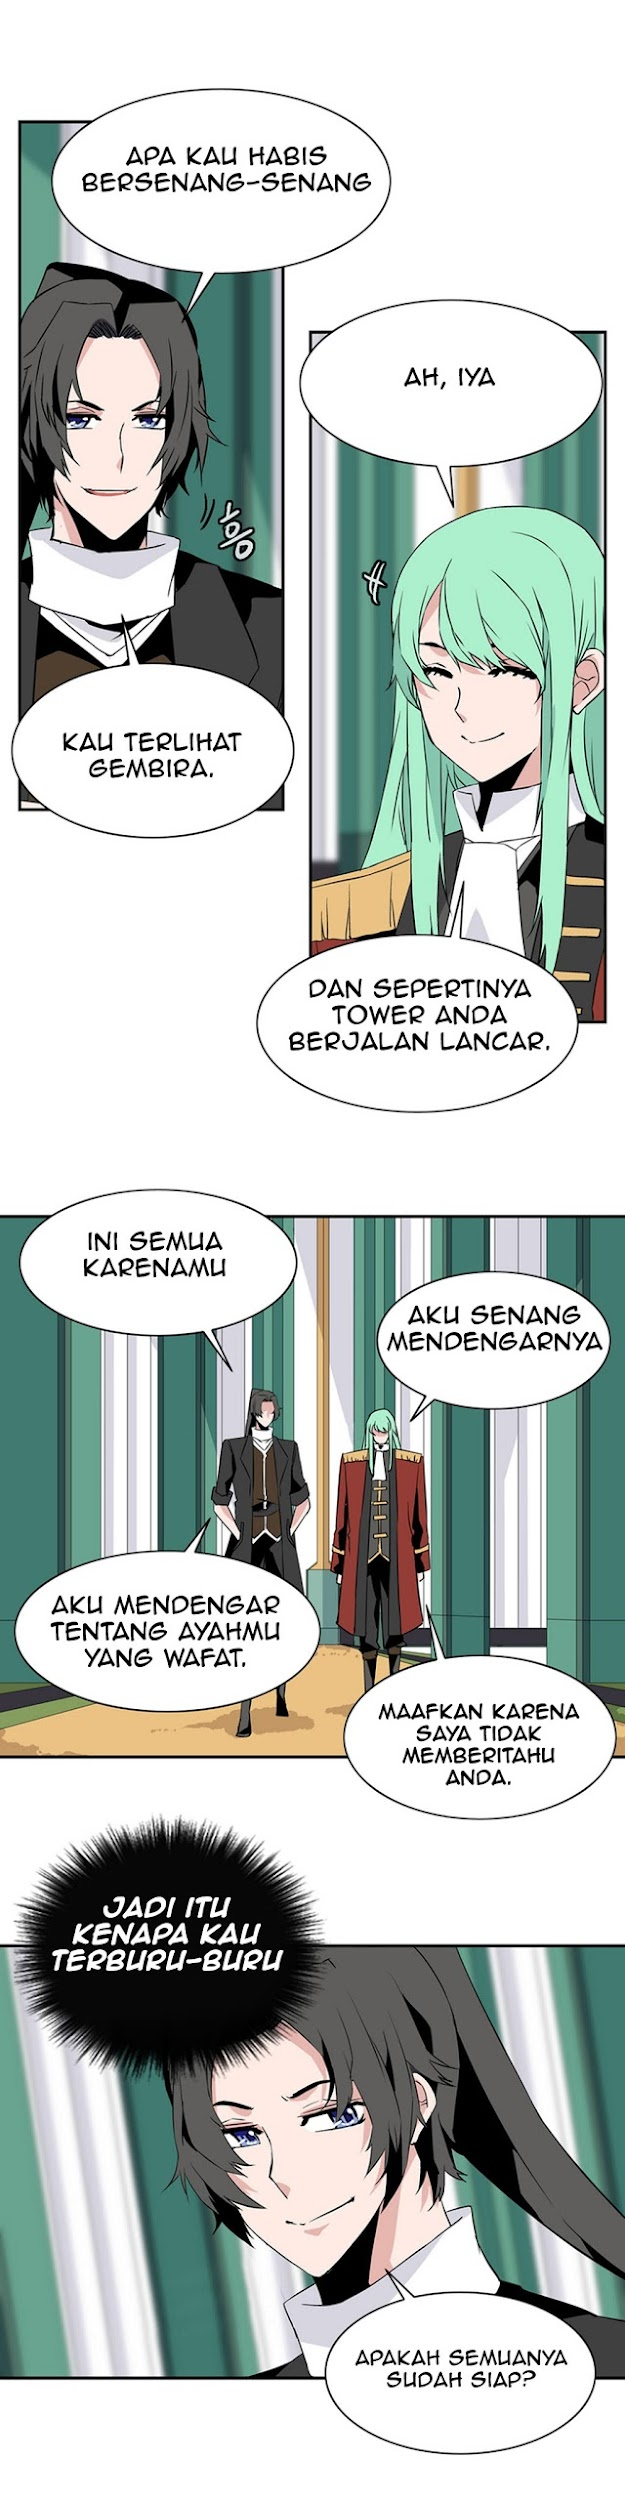 Dilarang COPAS - situs resmi www.mangacanblog.com - Komik wizardly tower 024 - chapter 24 25 Indonesia wizardly tower 024 - chapter 24 Terbaru 16|Baca Manga Komik Indonesia|Mangacan